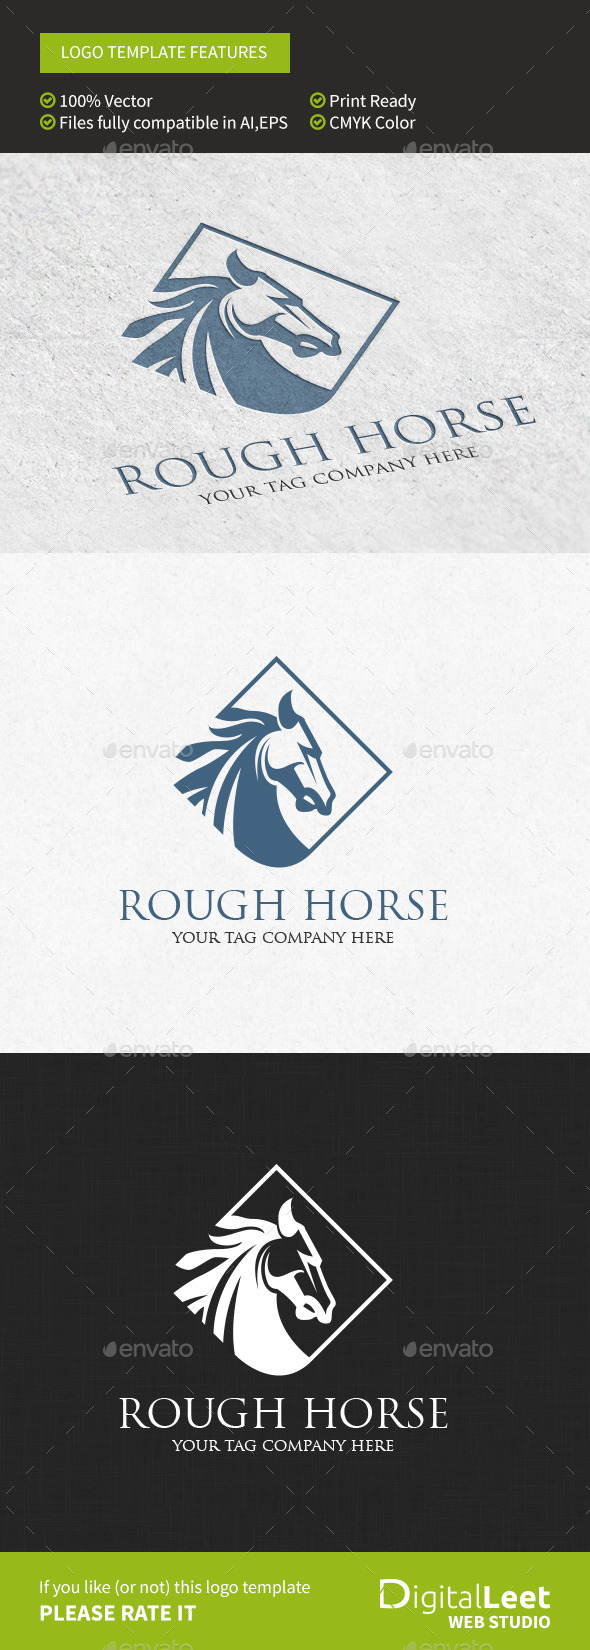 GraphicRiver Rough Horse Logo Template 8956109